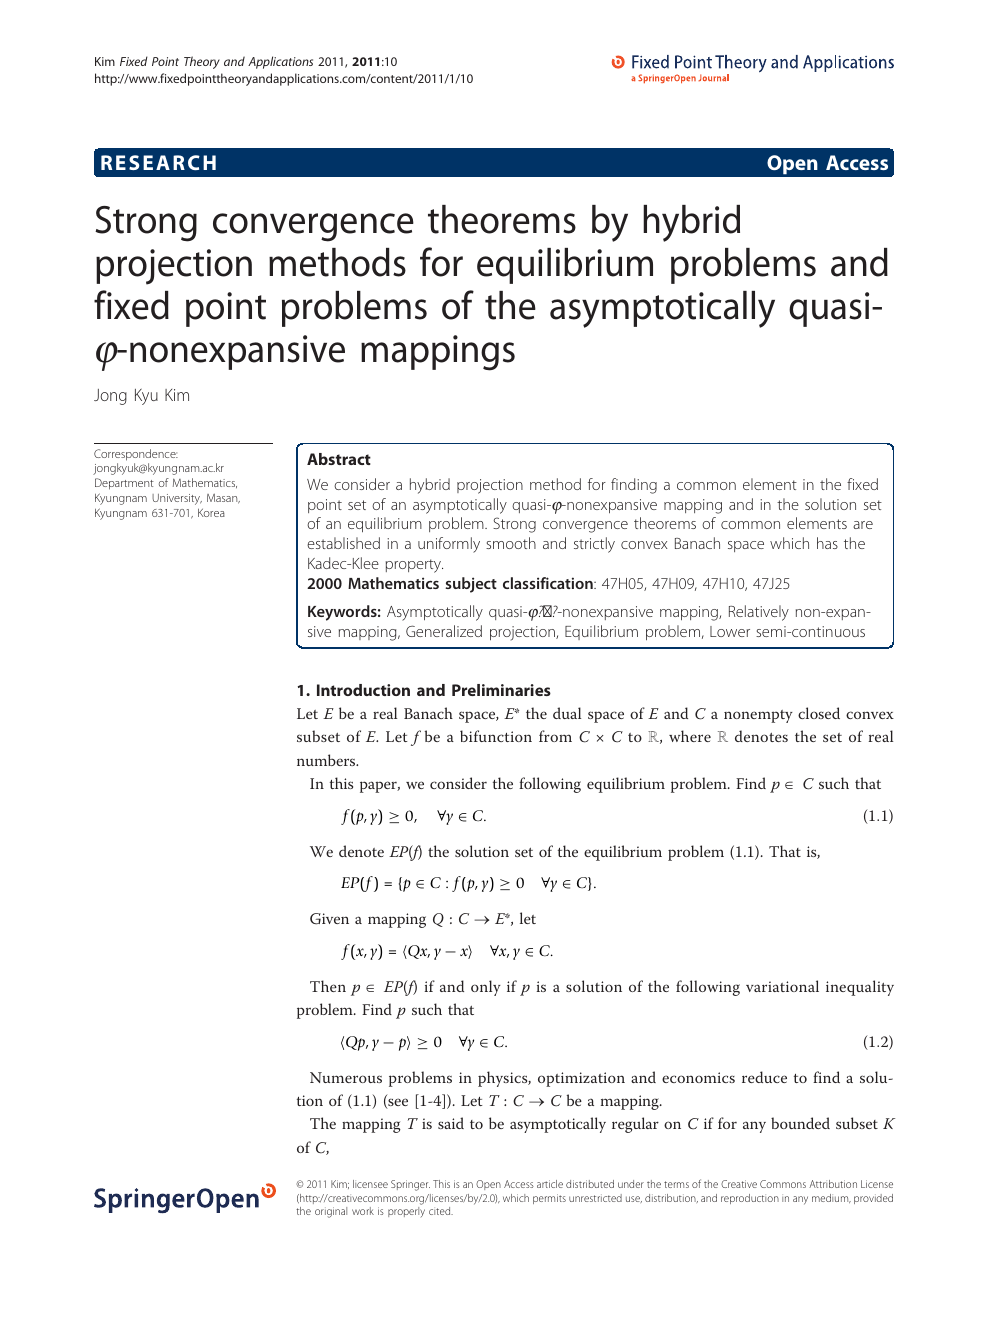 Strong convergence theorems by hybrid projection methods for